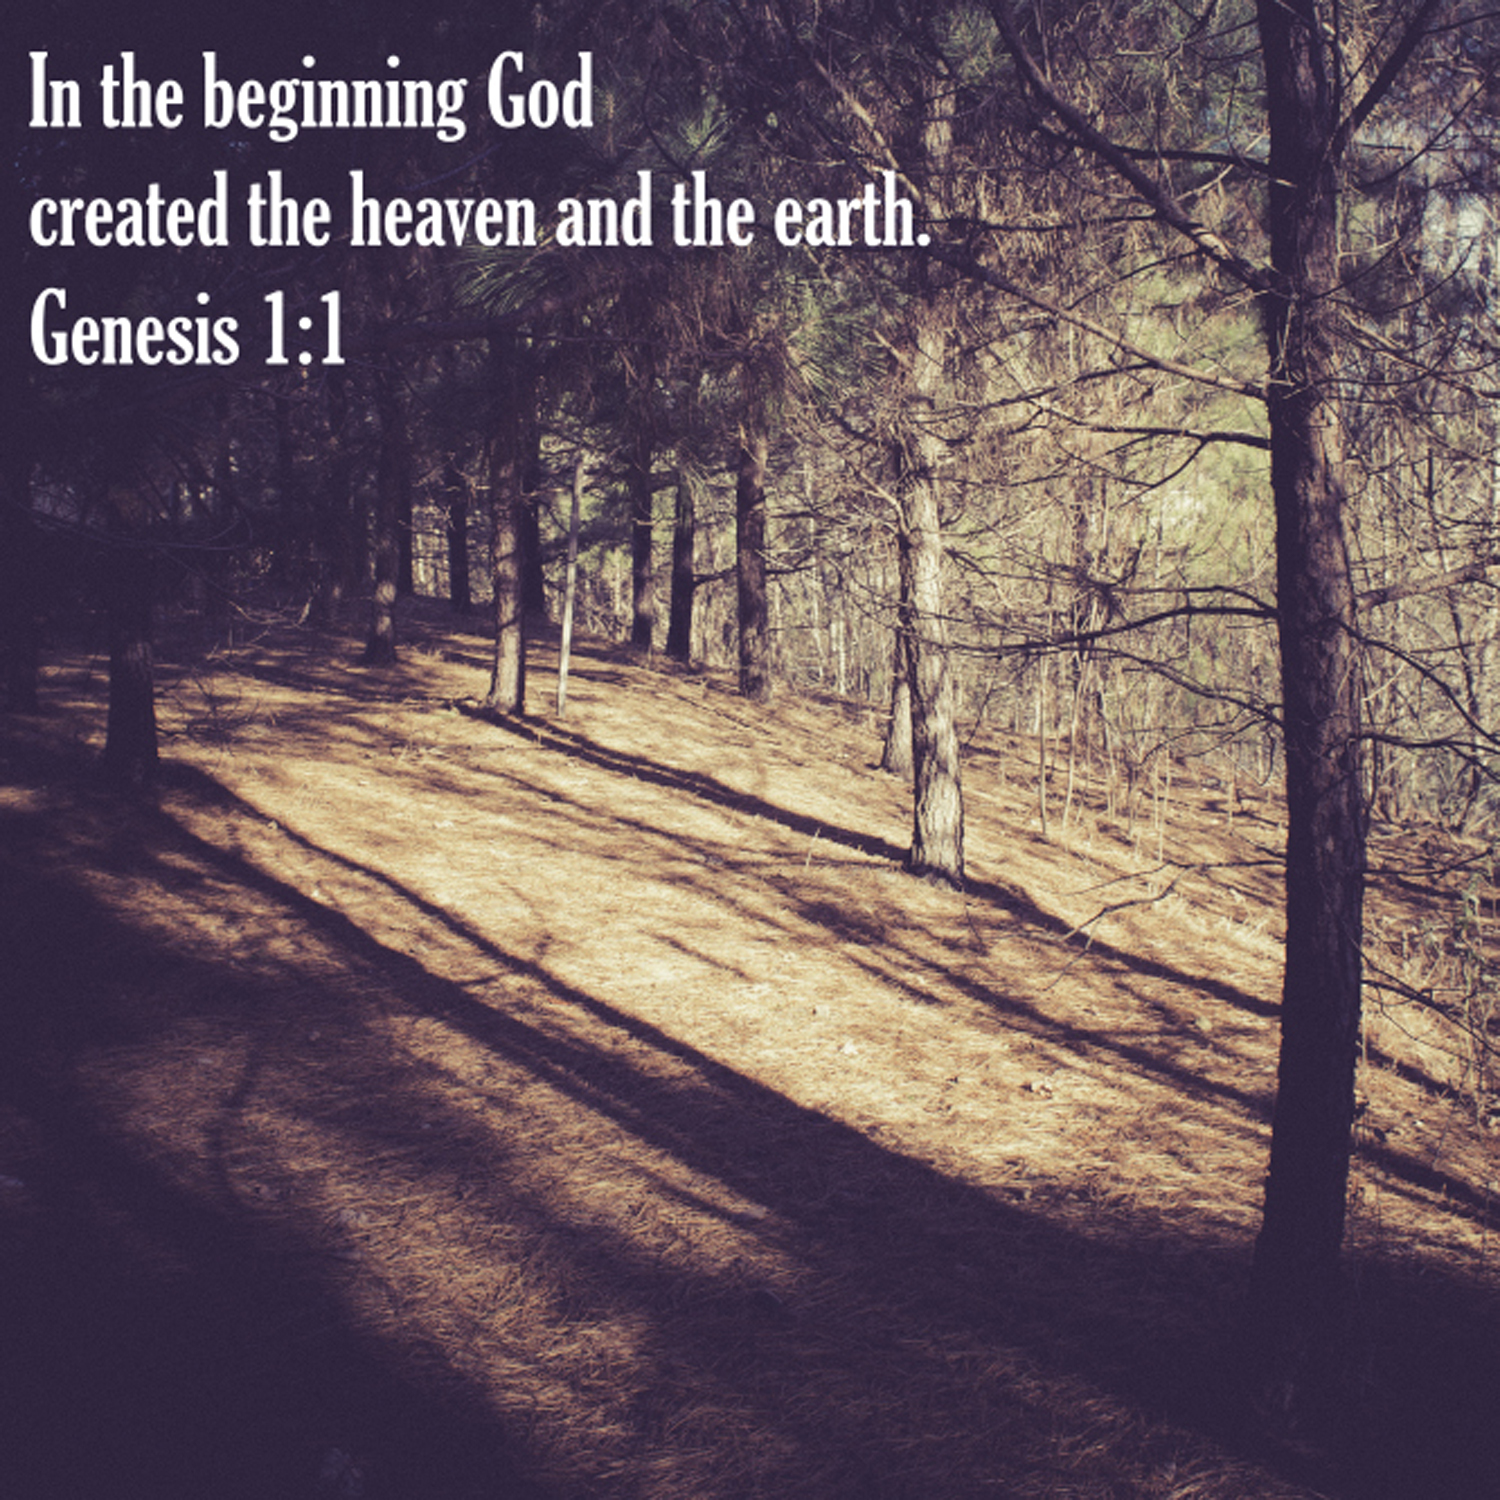 genesis-1-1-in-the-beginning